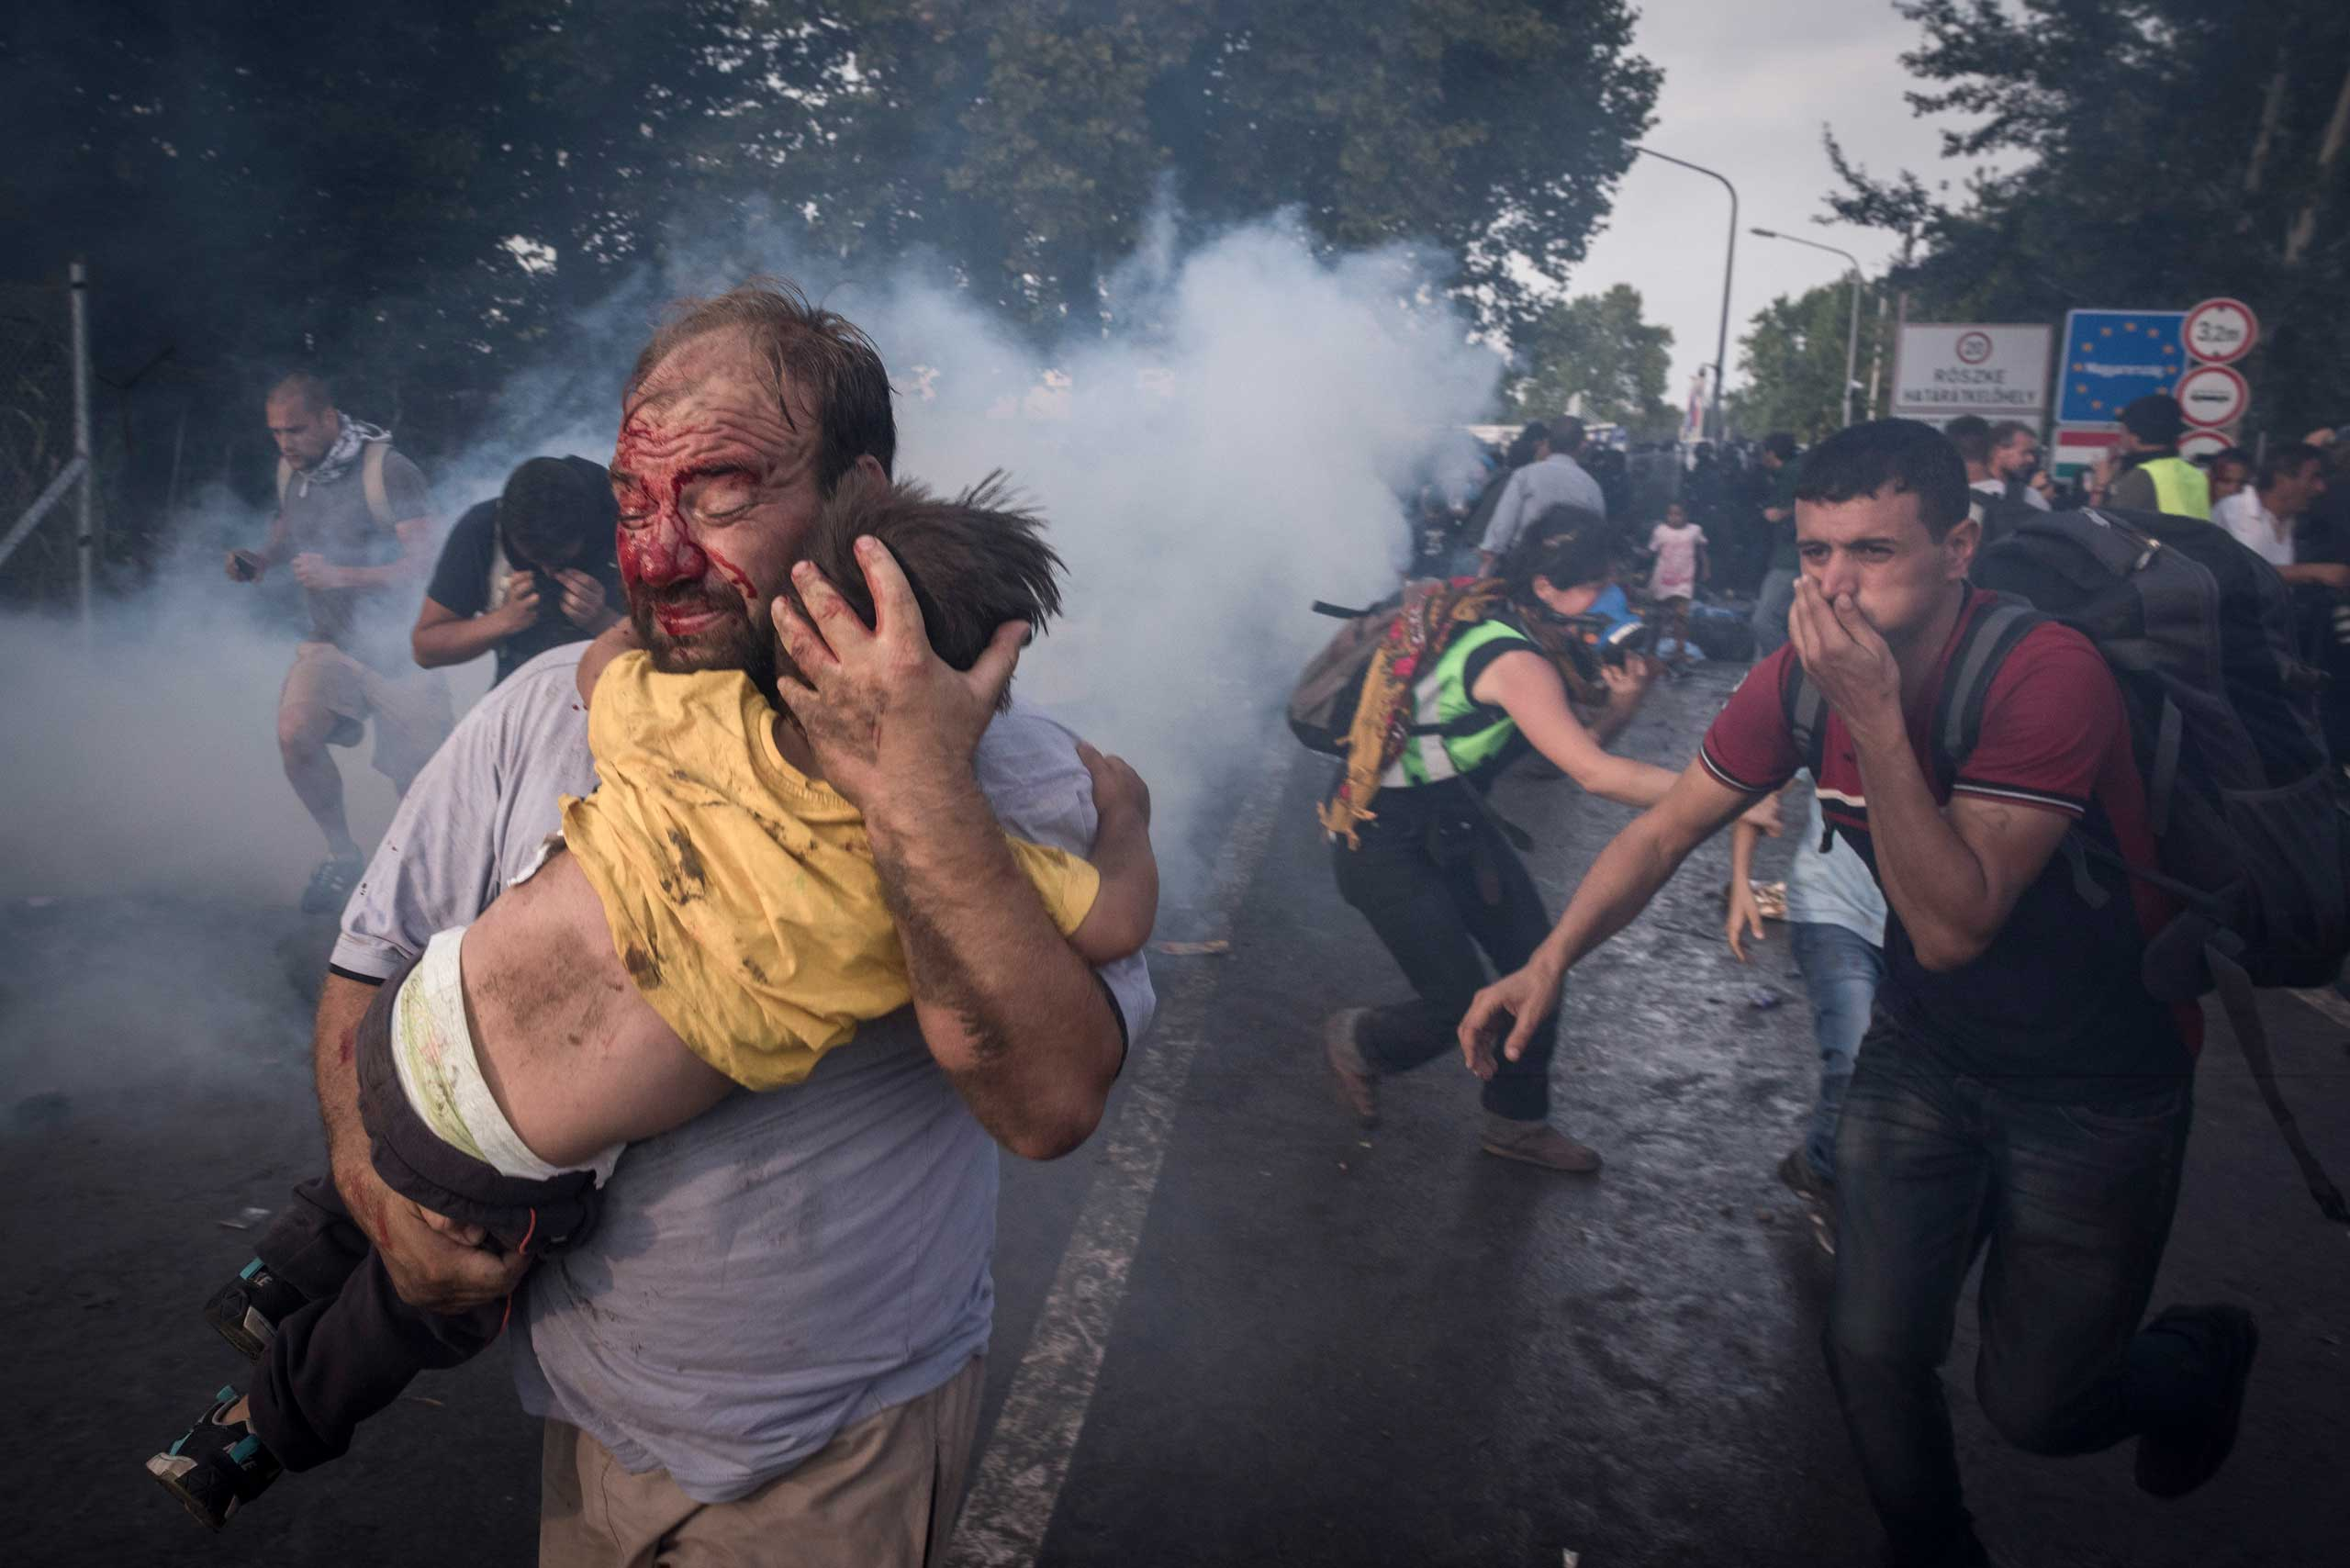 The New York Times: Desperation and Conflict in the Migrant CrisisA migrant holds his child during a clash with Hungarian riot police at the Horgos border crossing in Serbia, on Sept. 16, 2015.